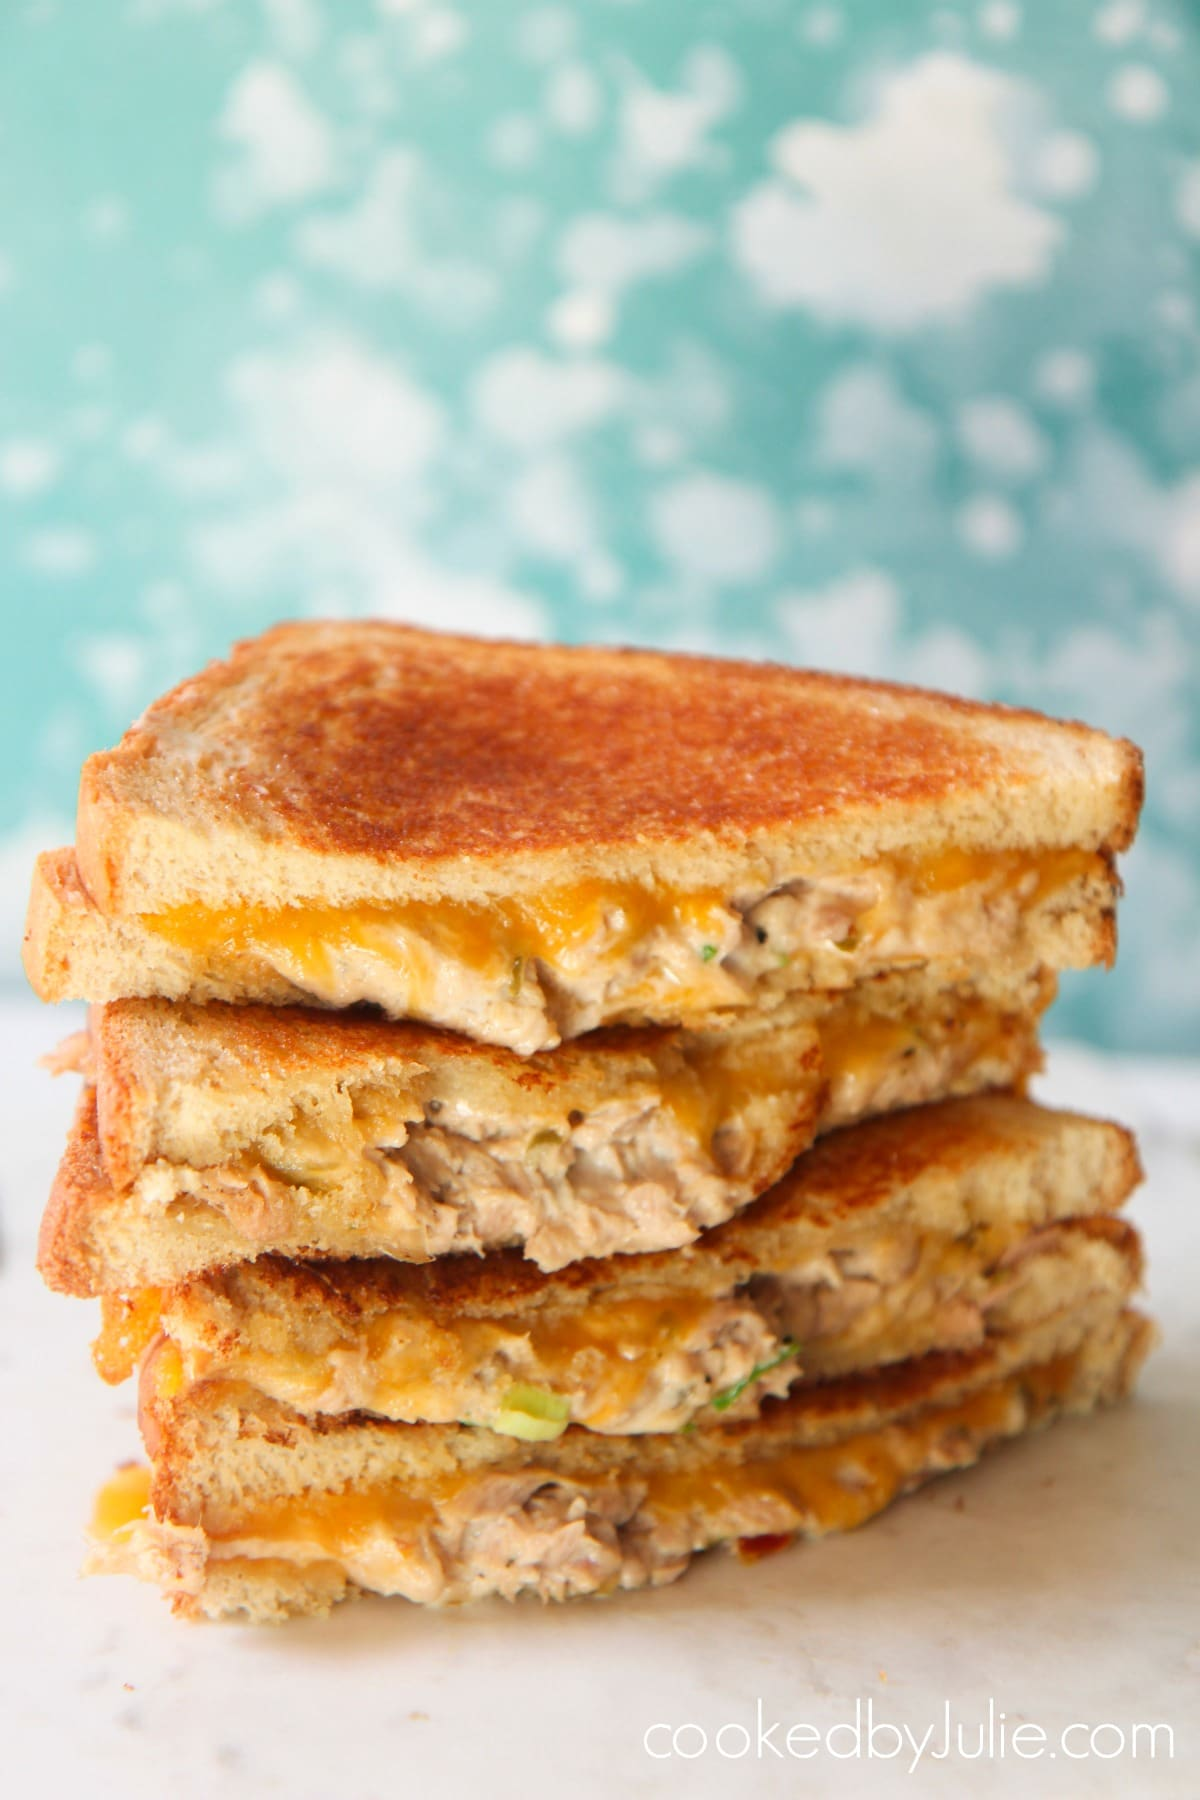 Four tuna melt sandwiches on a white surface with a baby blue and white backdrop.